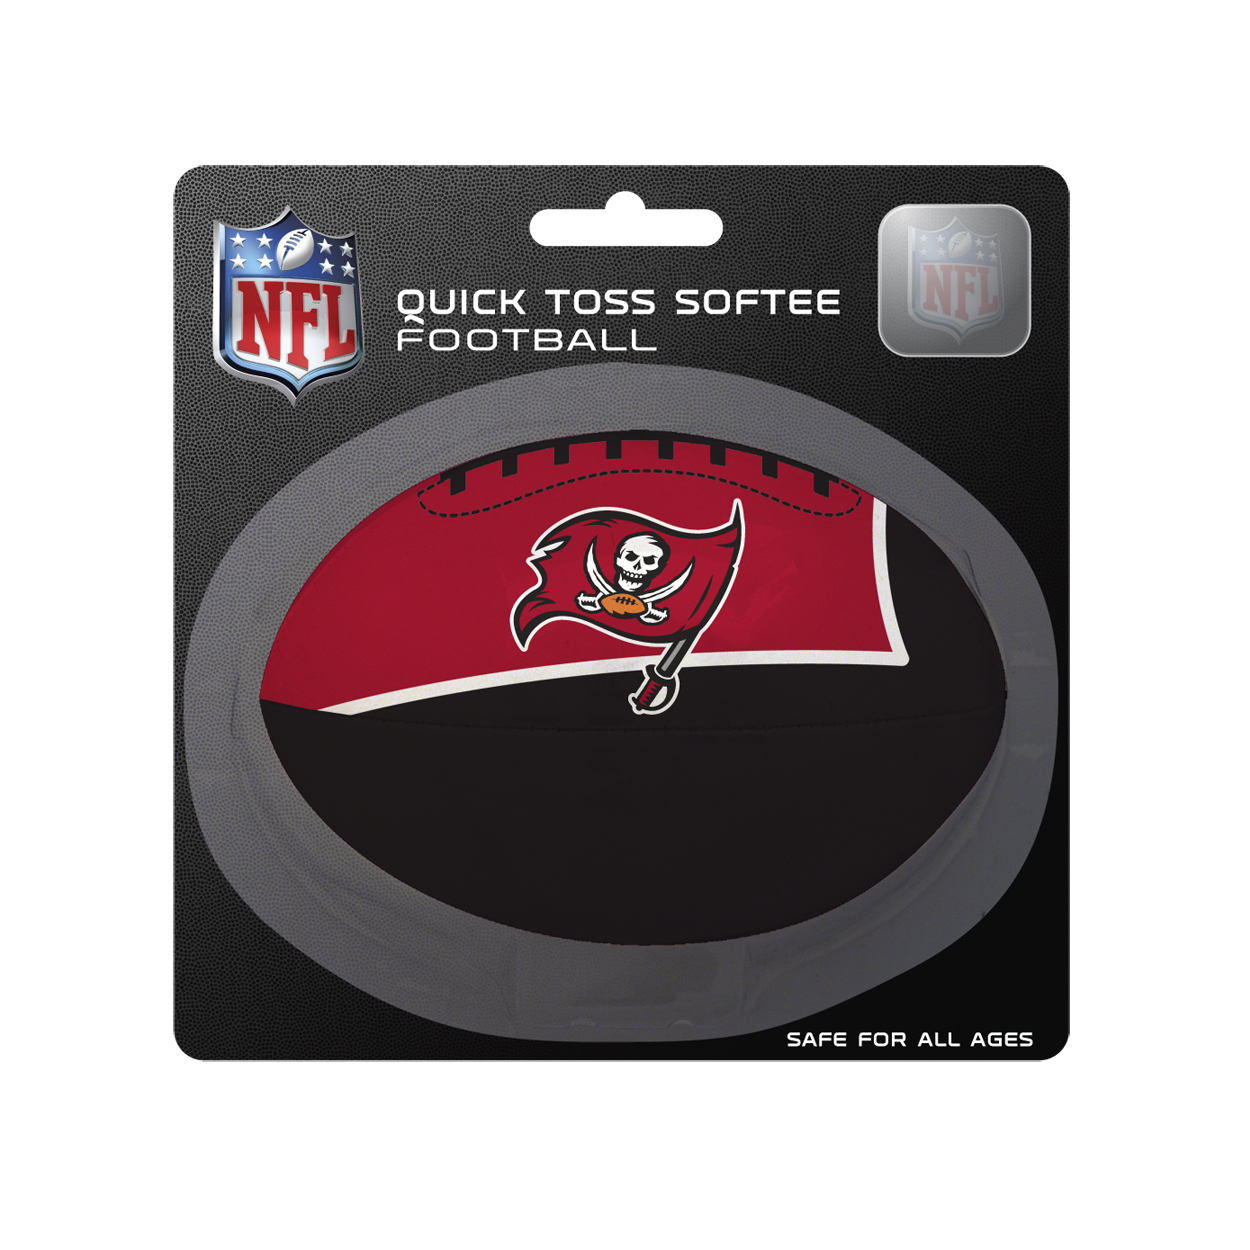 NFL Quick Toss Tampa Bay Football